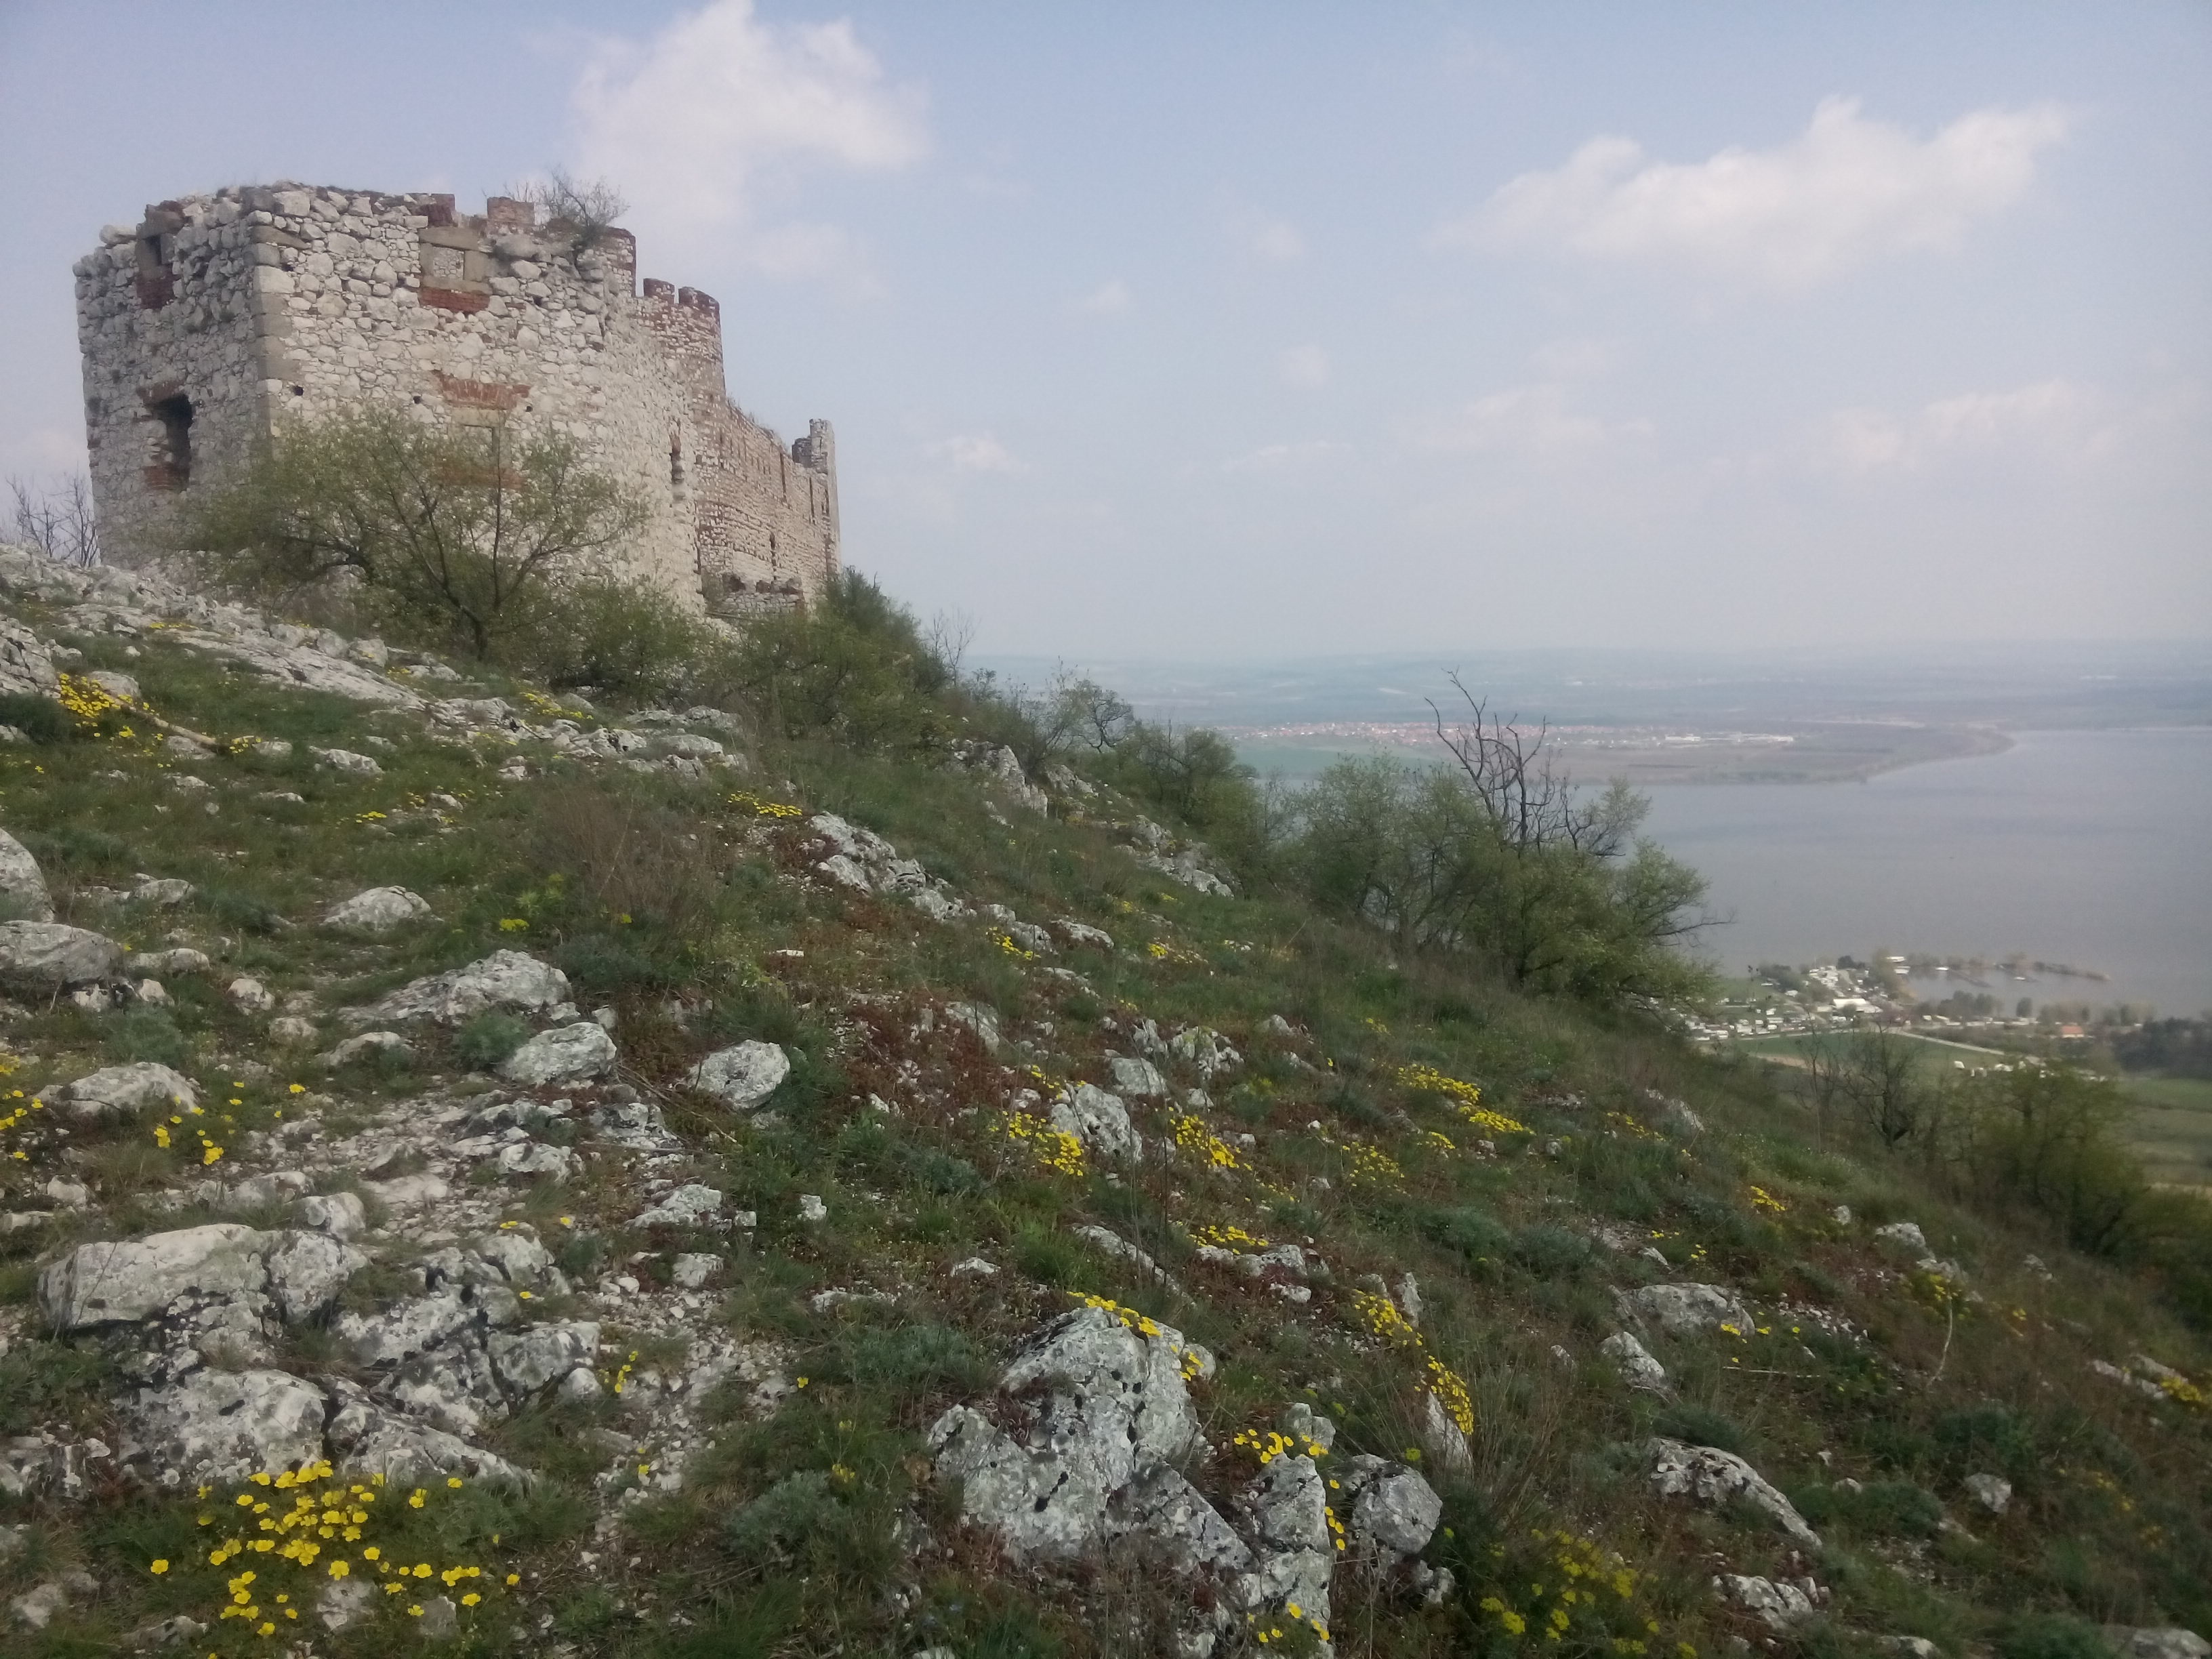 An old castle on a hill covered in rocks and yellow flowers, lake in the distance